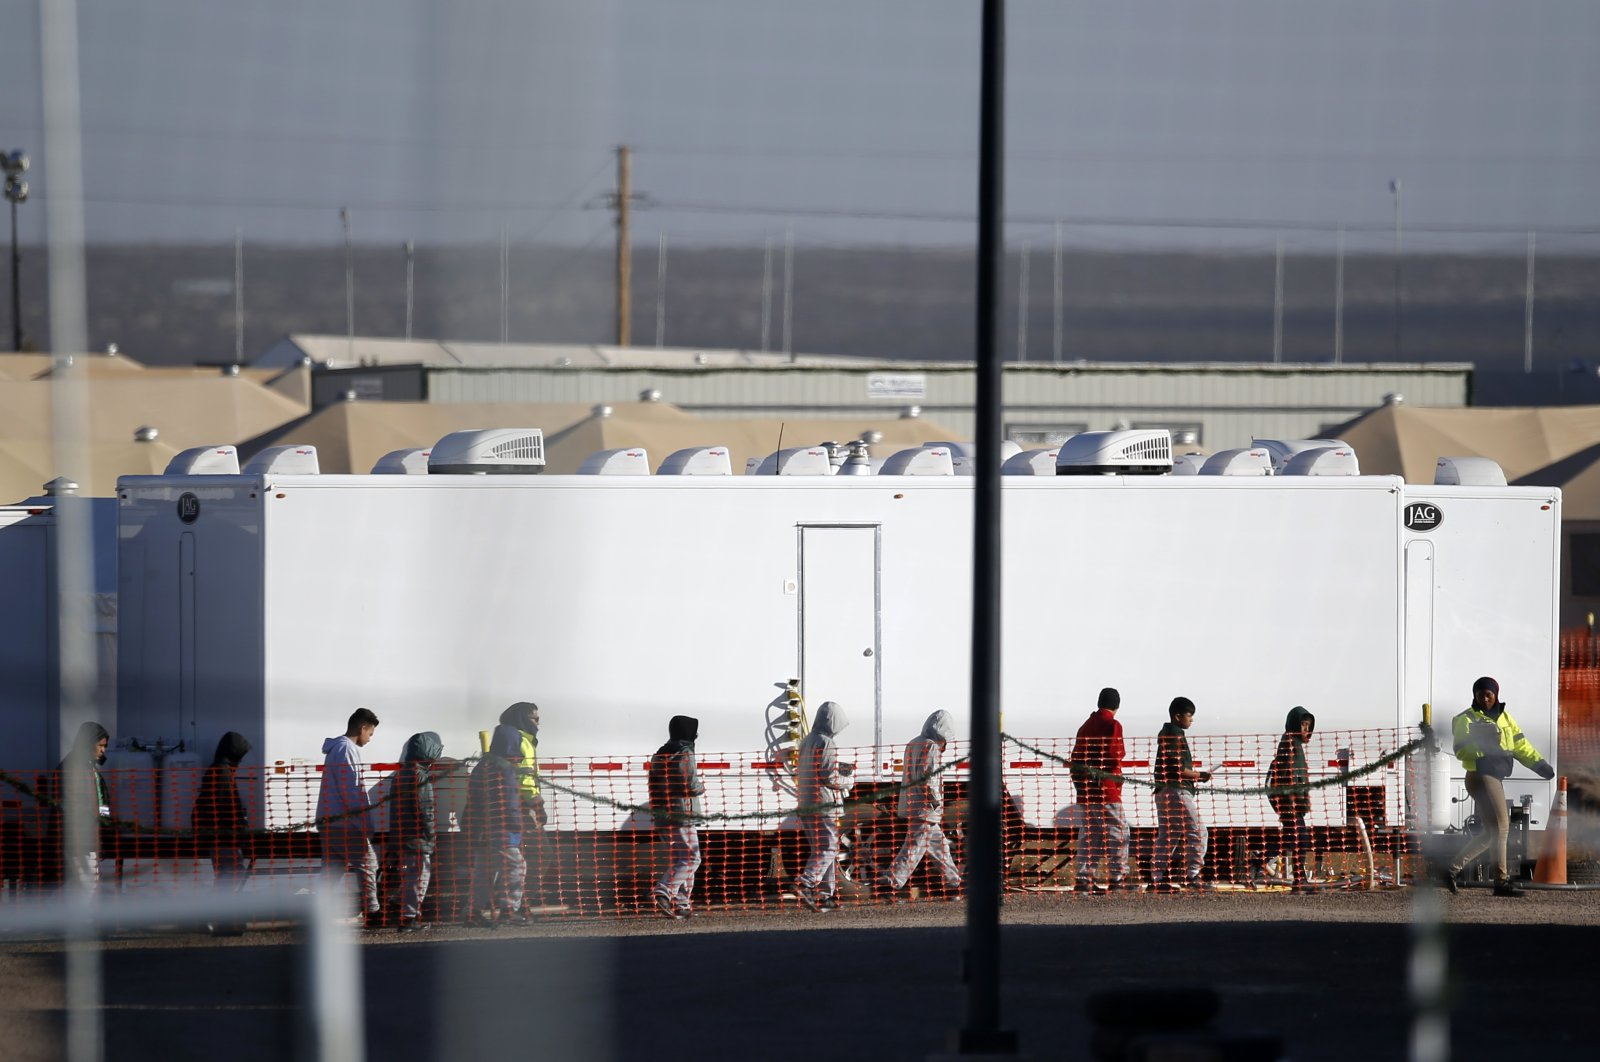 In this Dec. 13, 2018 file photo migrant teens walk in a line through the Tornillo detention camp in Tornillo, Texas. (AP File Photo)